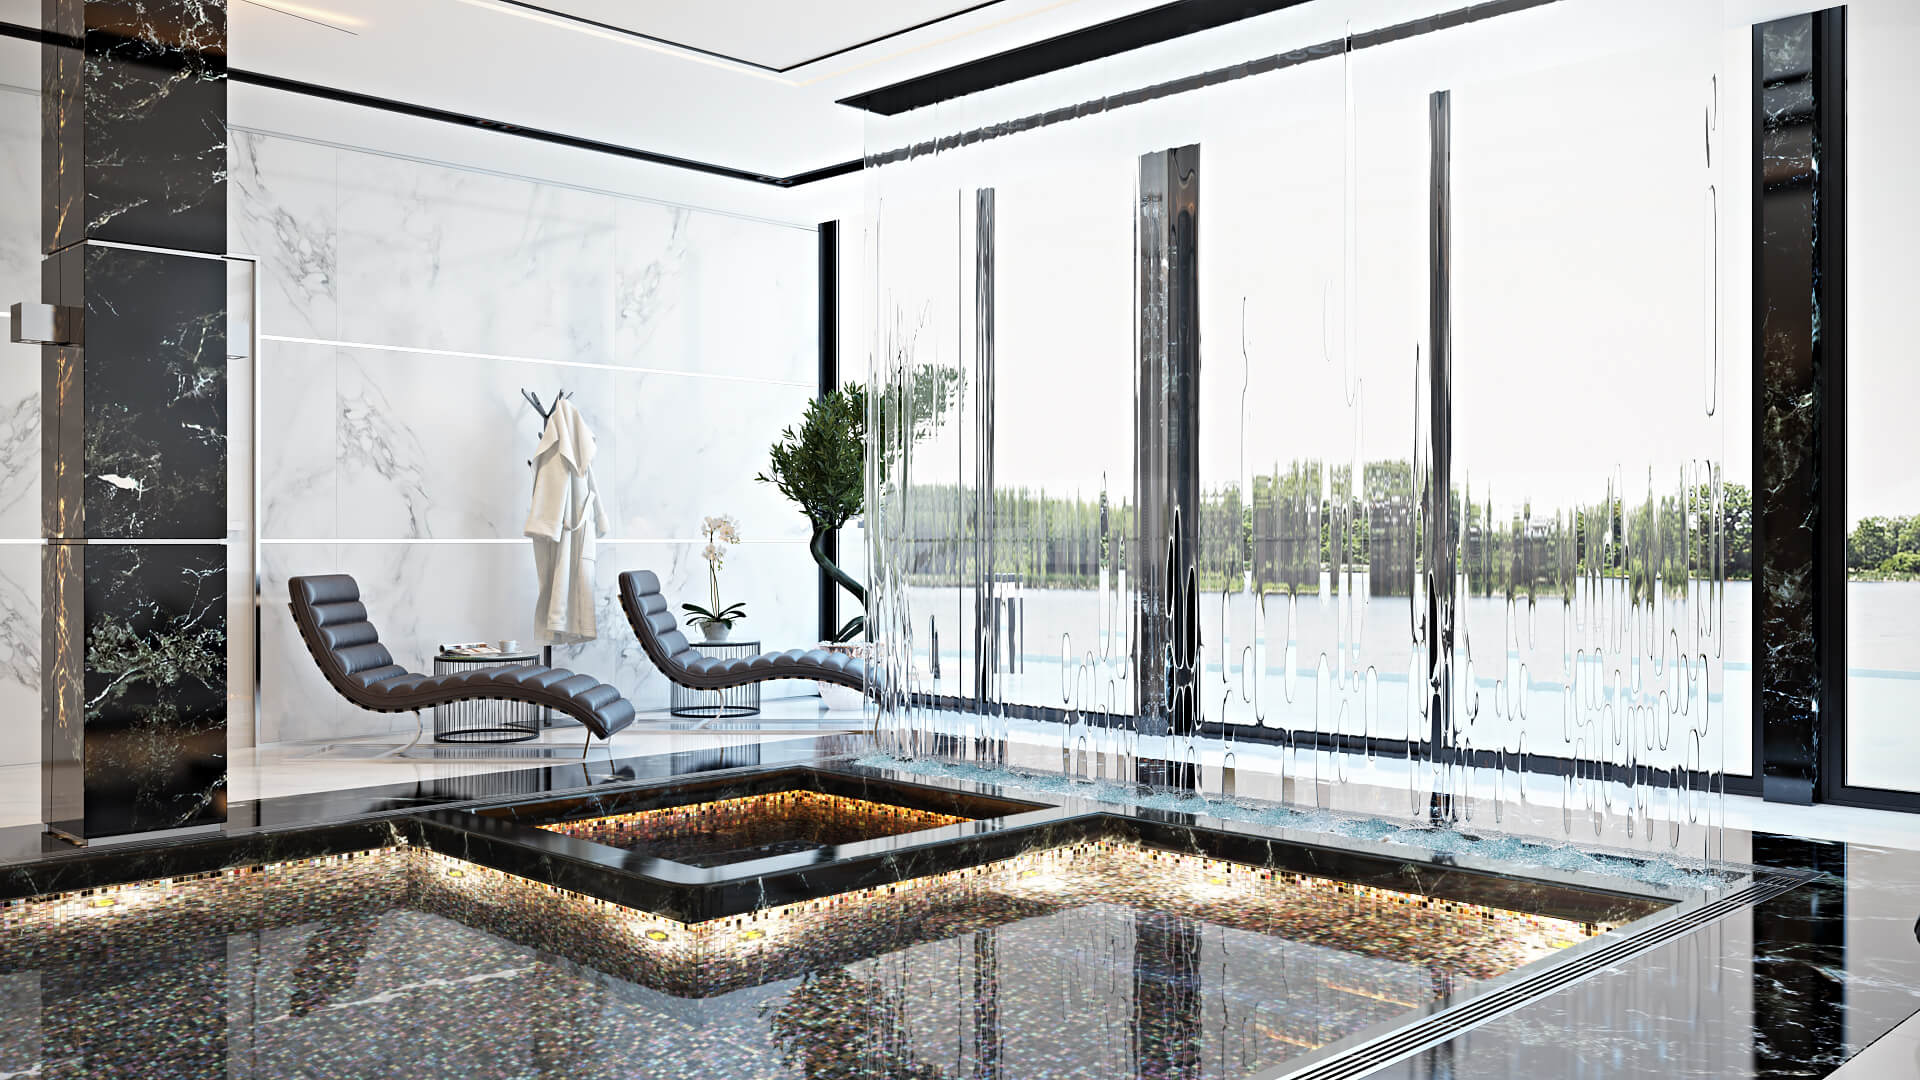 3D Rendering of a Swimming Pool Inside a Home